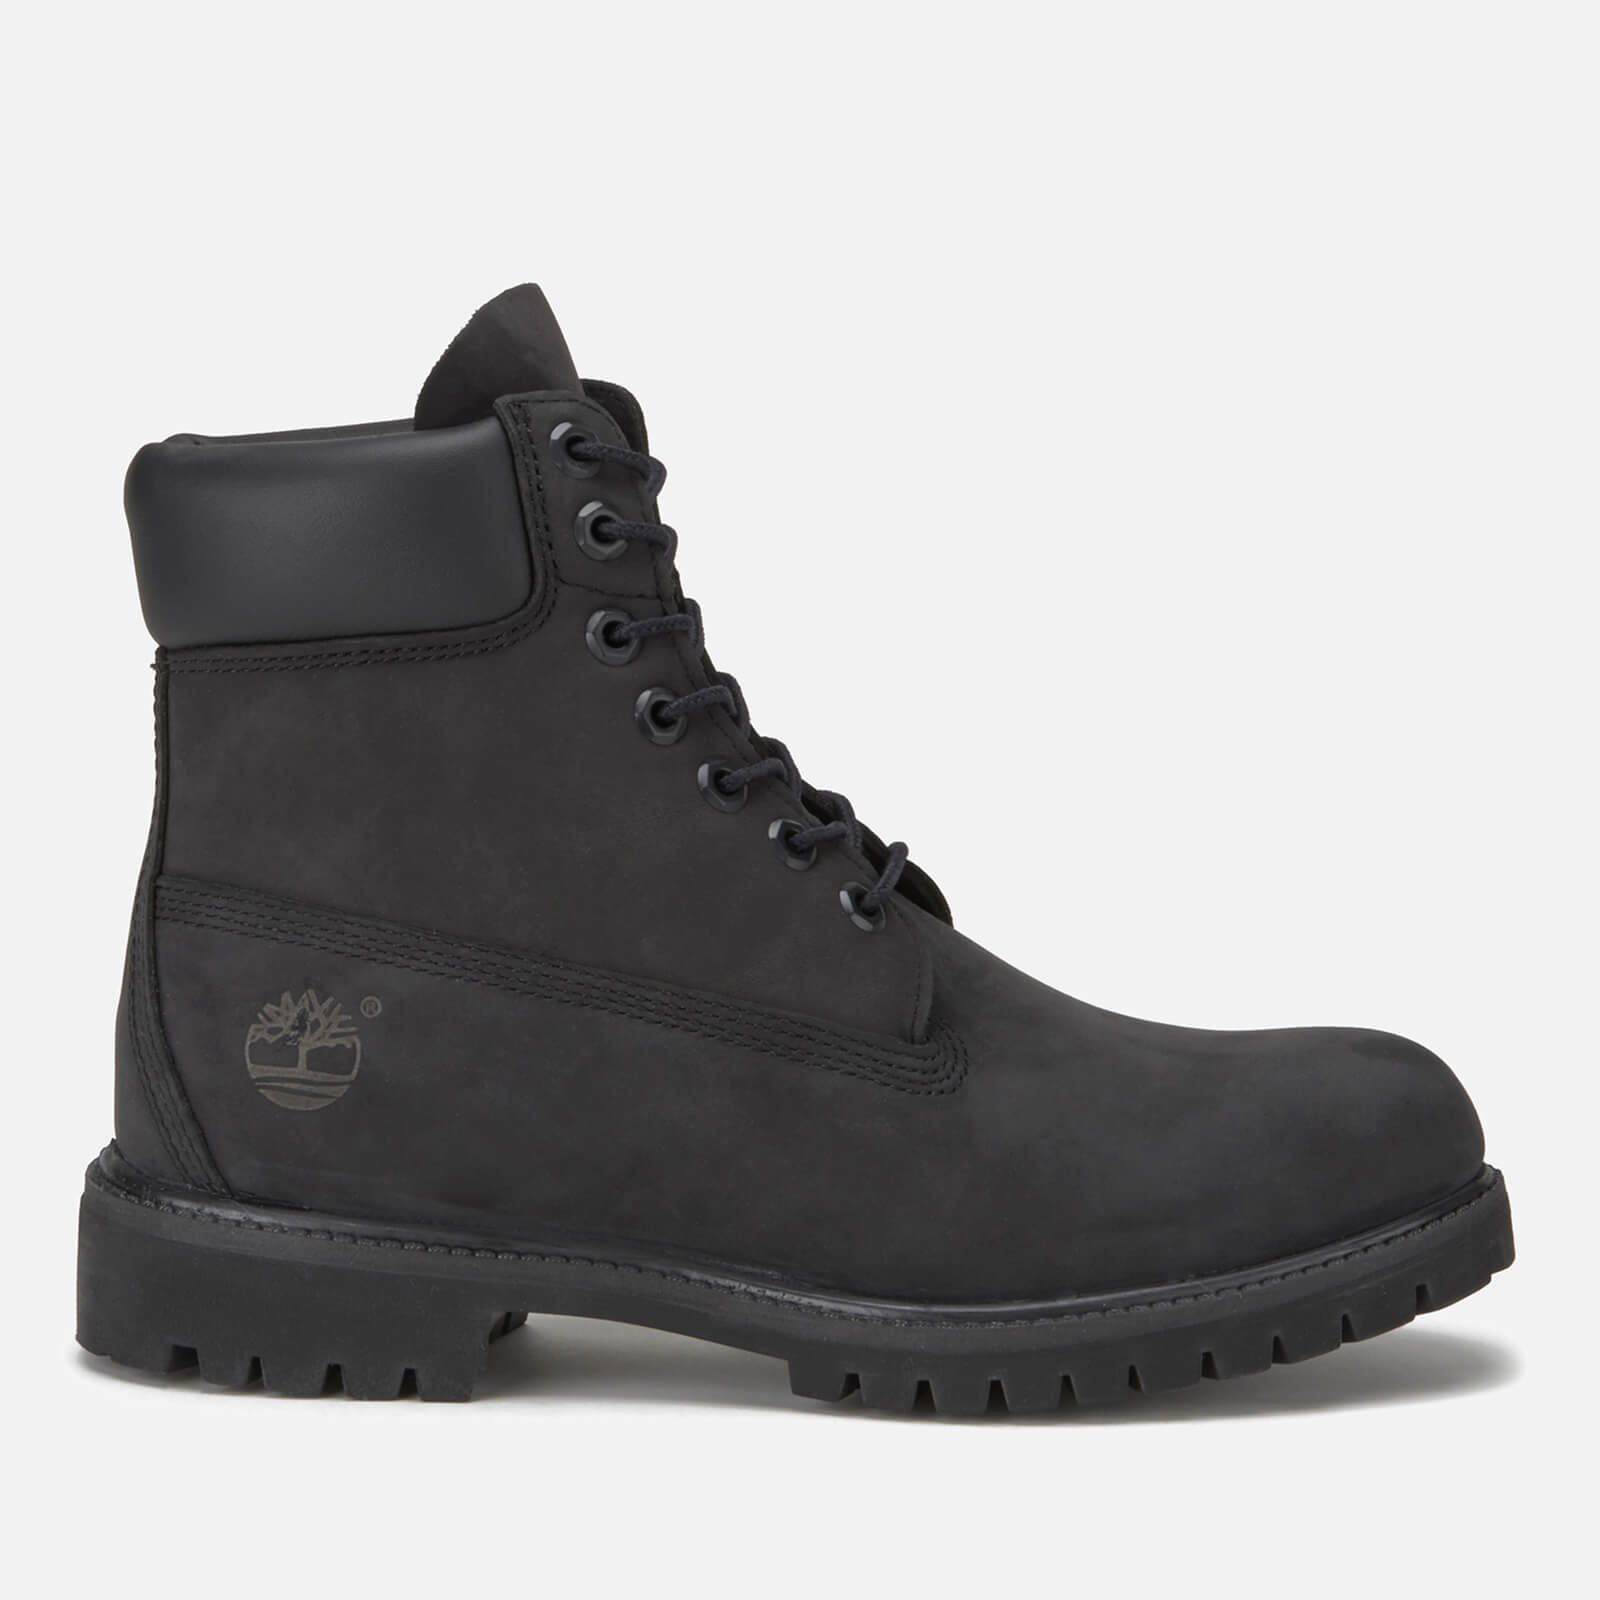 Timberland Mens 6 Inch Premium Waterproof Boots Black Uk 8